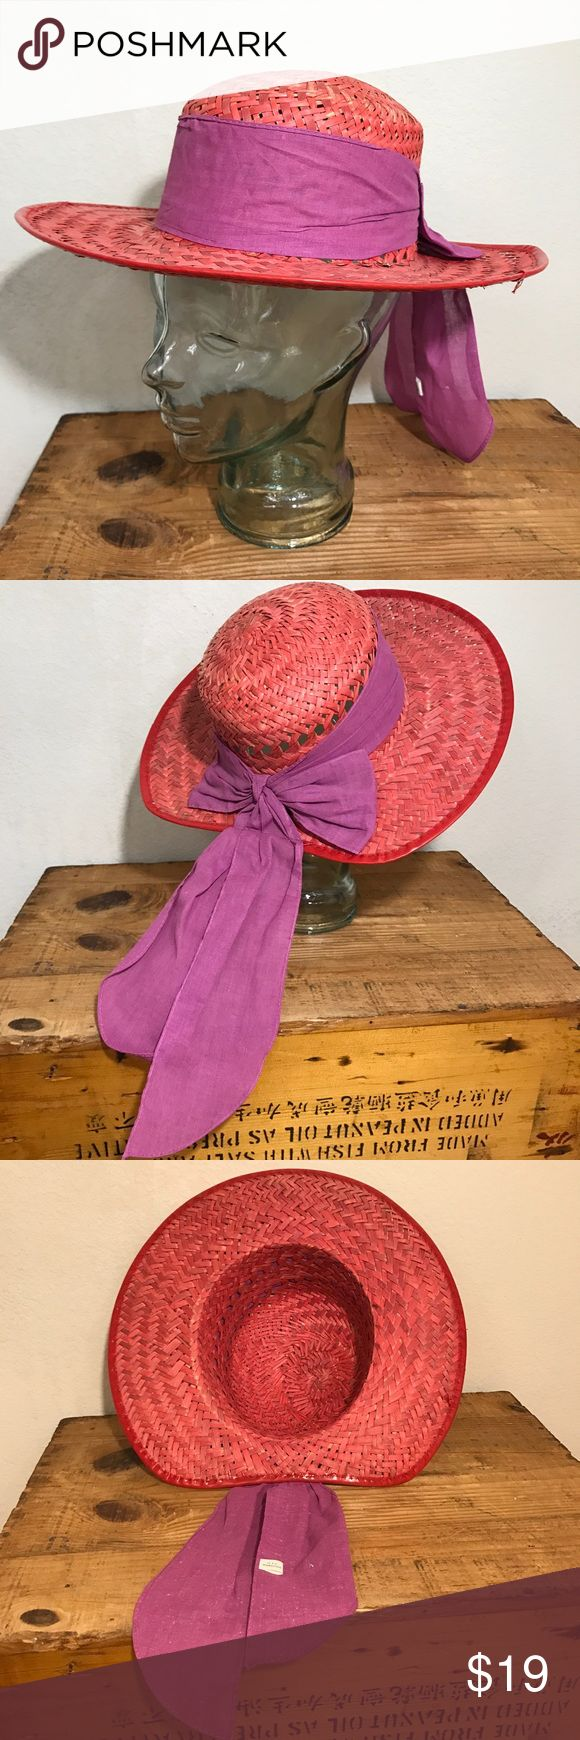 "Red Hat Society Hat With Purple Scarf Straw Hat Women's Red Hat With Purple Scarf Straw Hat Cotton Scarf Inside circumference approx 21"" Red Hat Society Please see photos as we do consider them to be a part of the description. Accessories Hats"